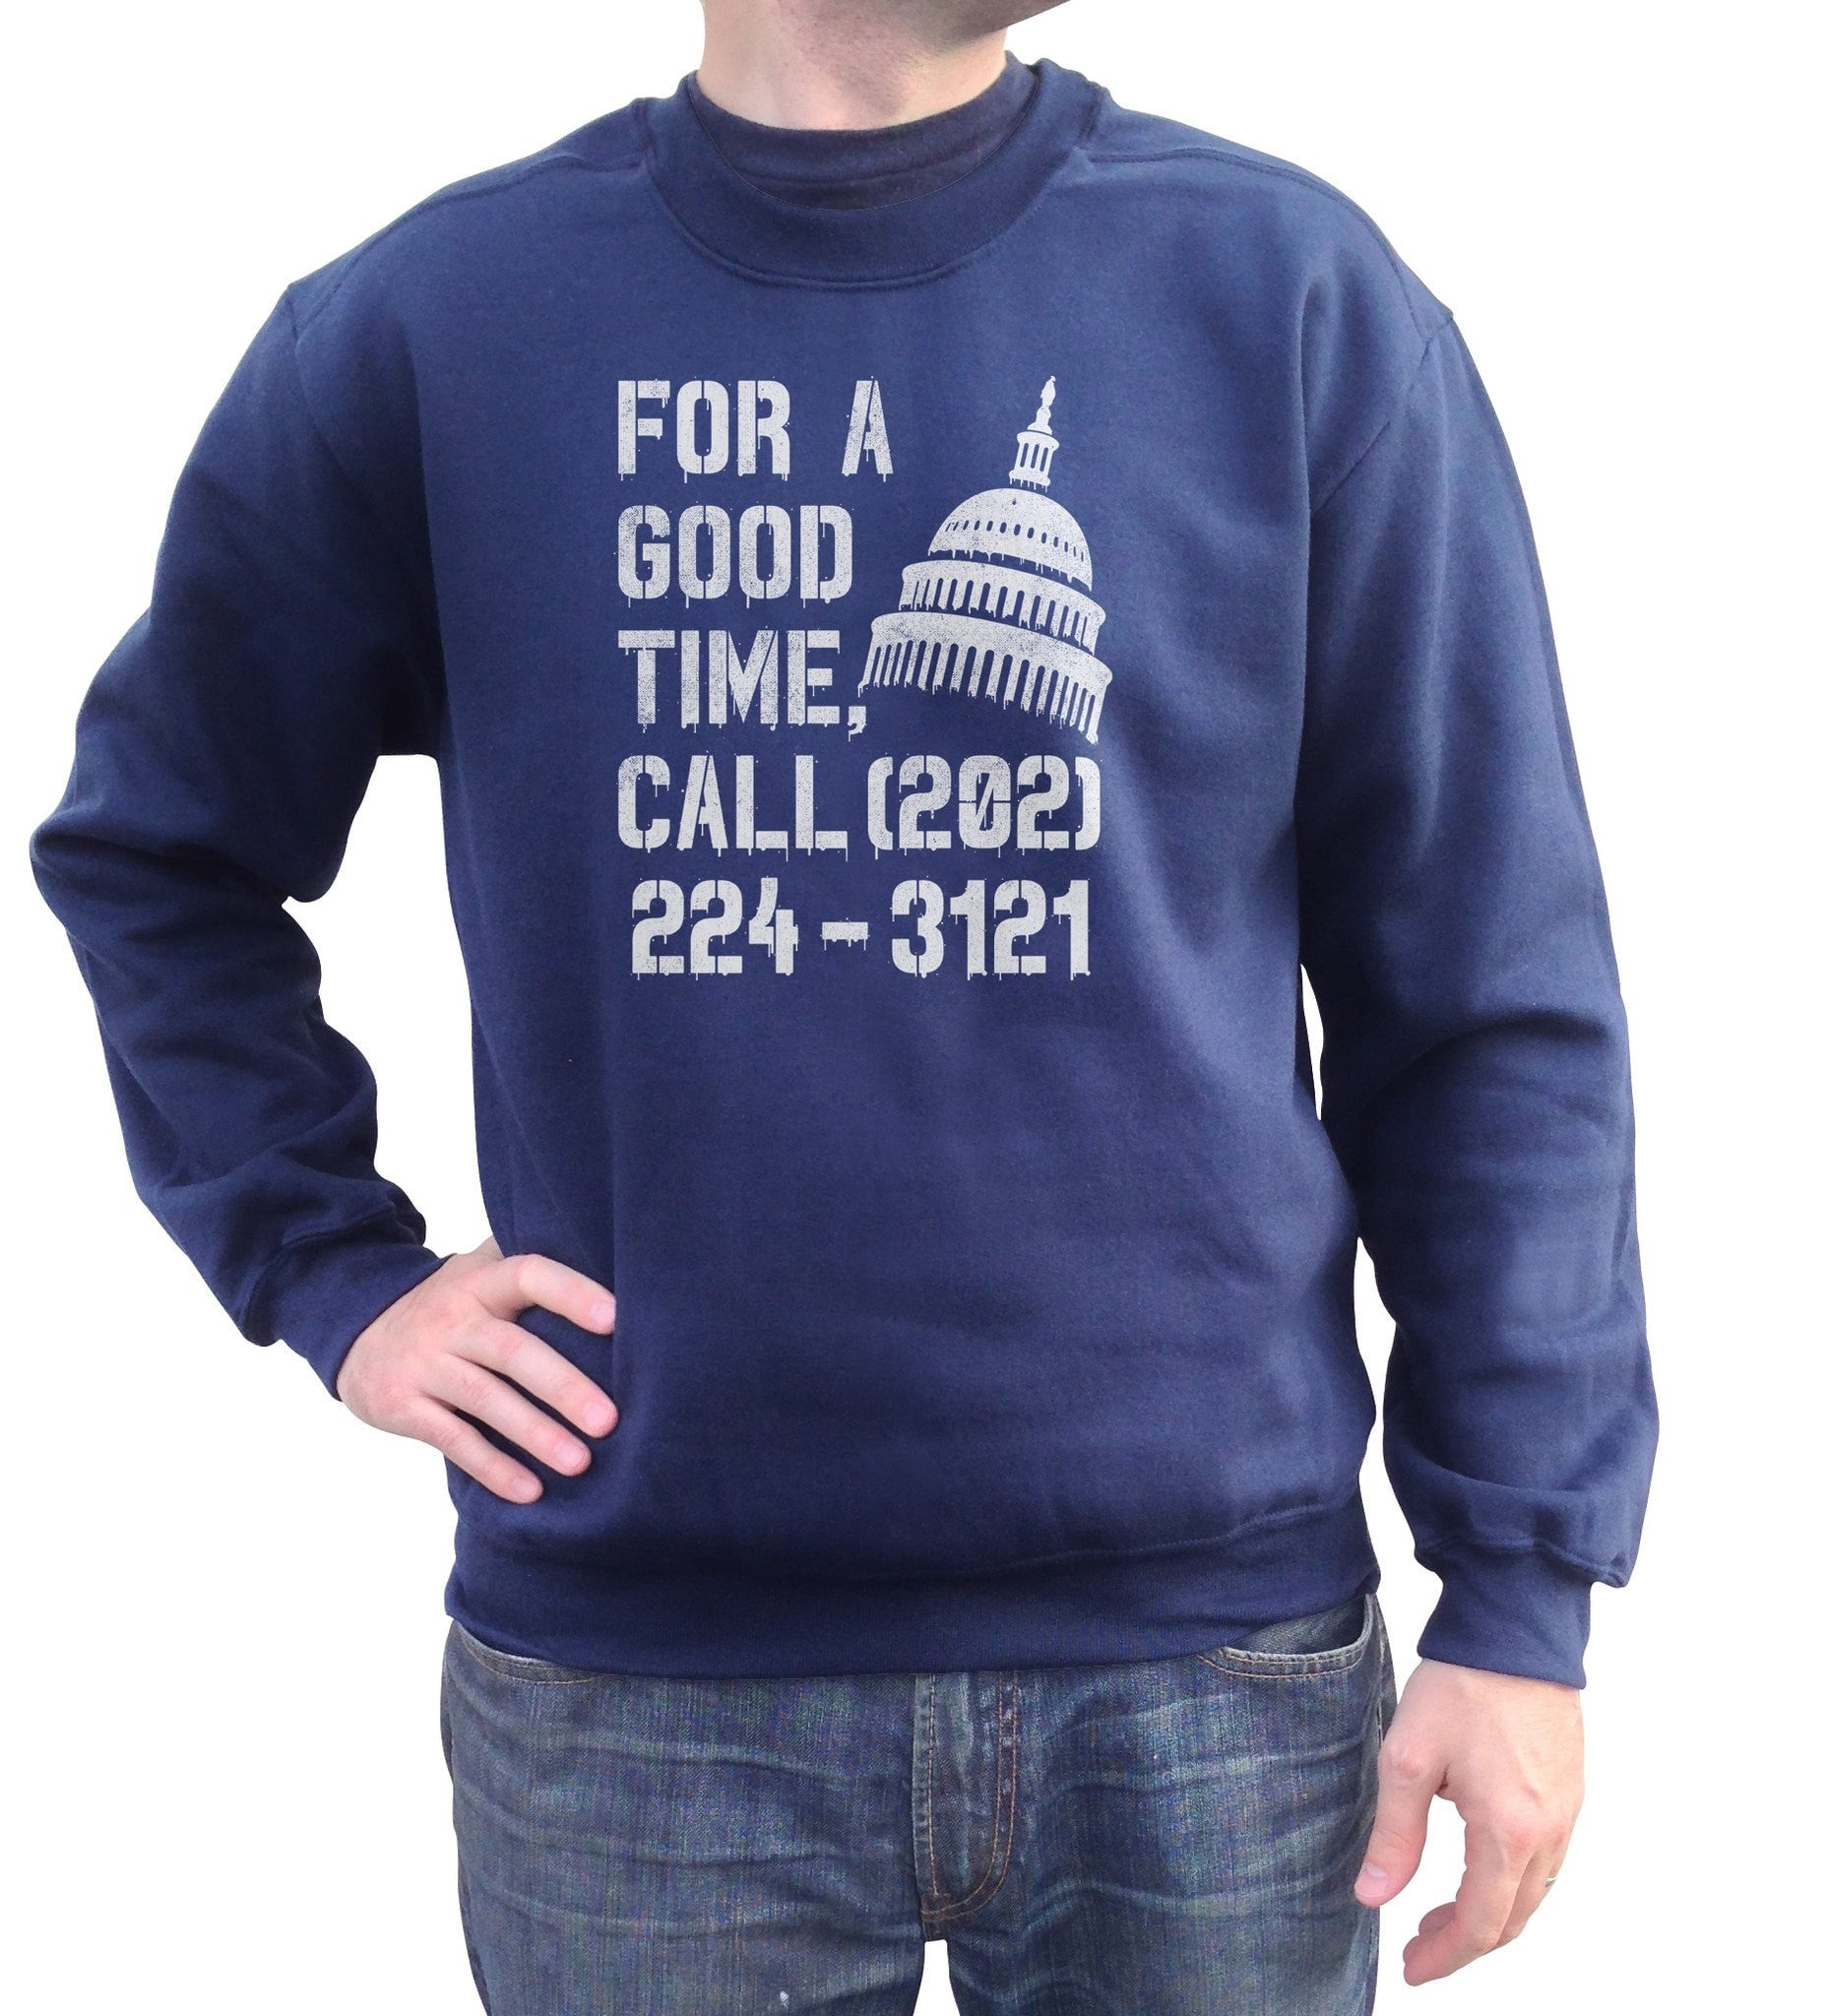 Unisex For a Good Time Call Congress Sweatshirt - Activist Shirt